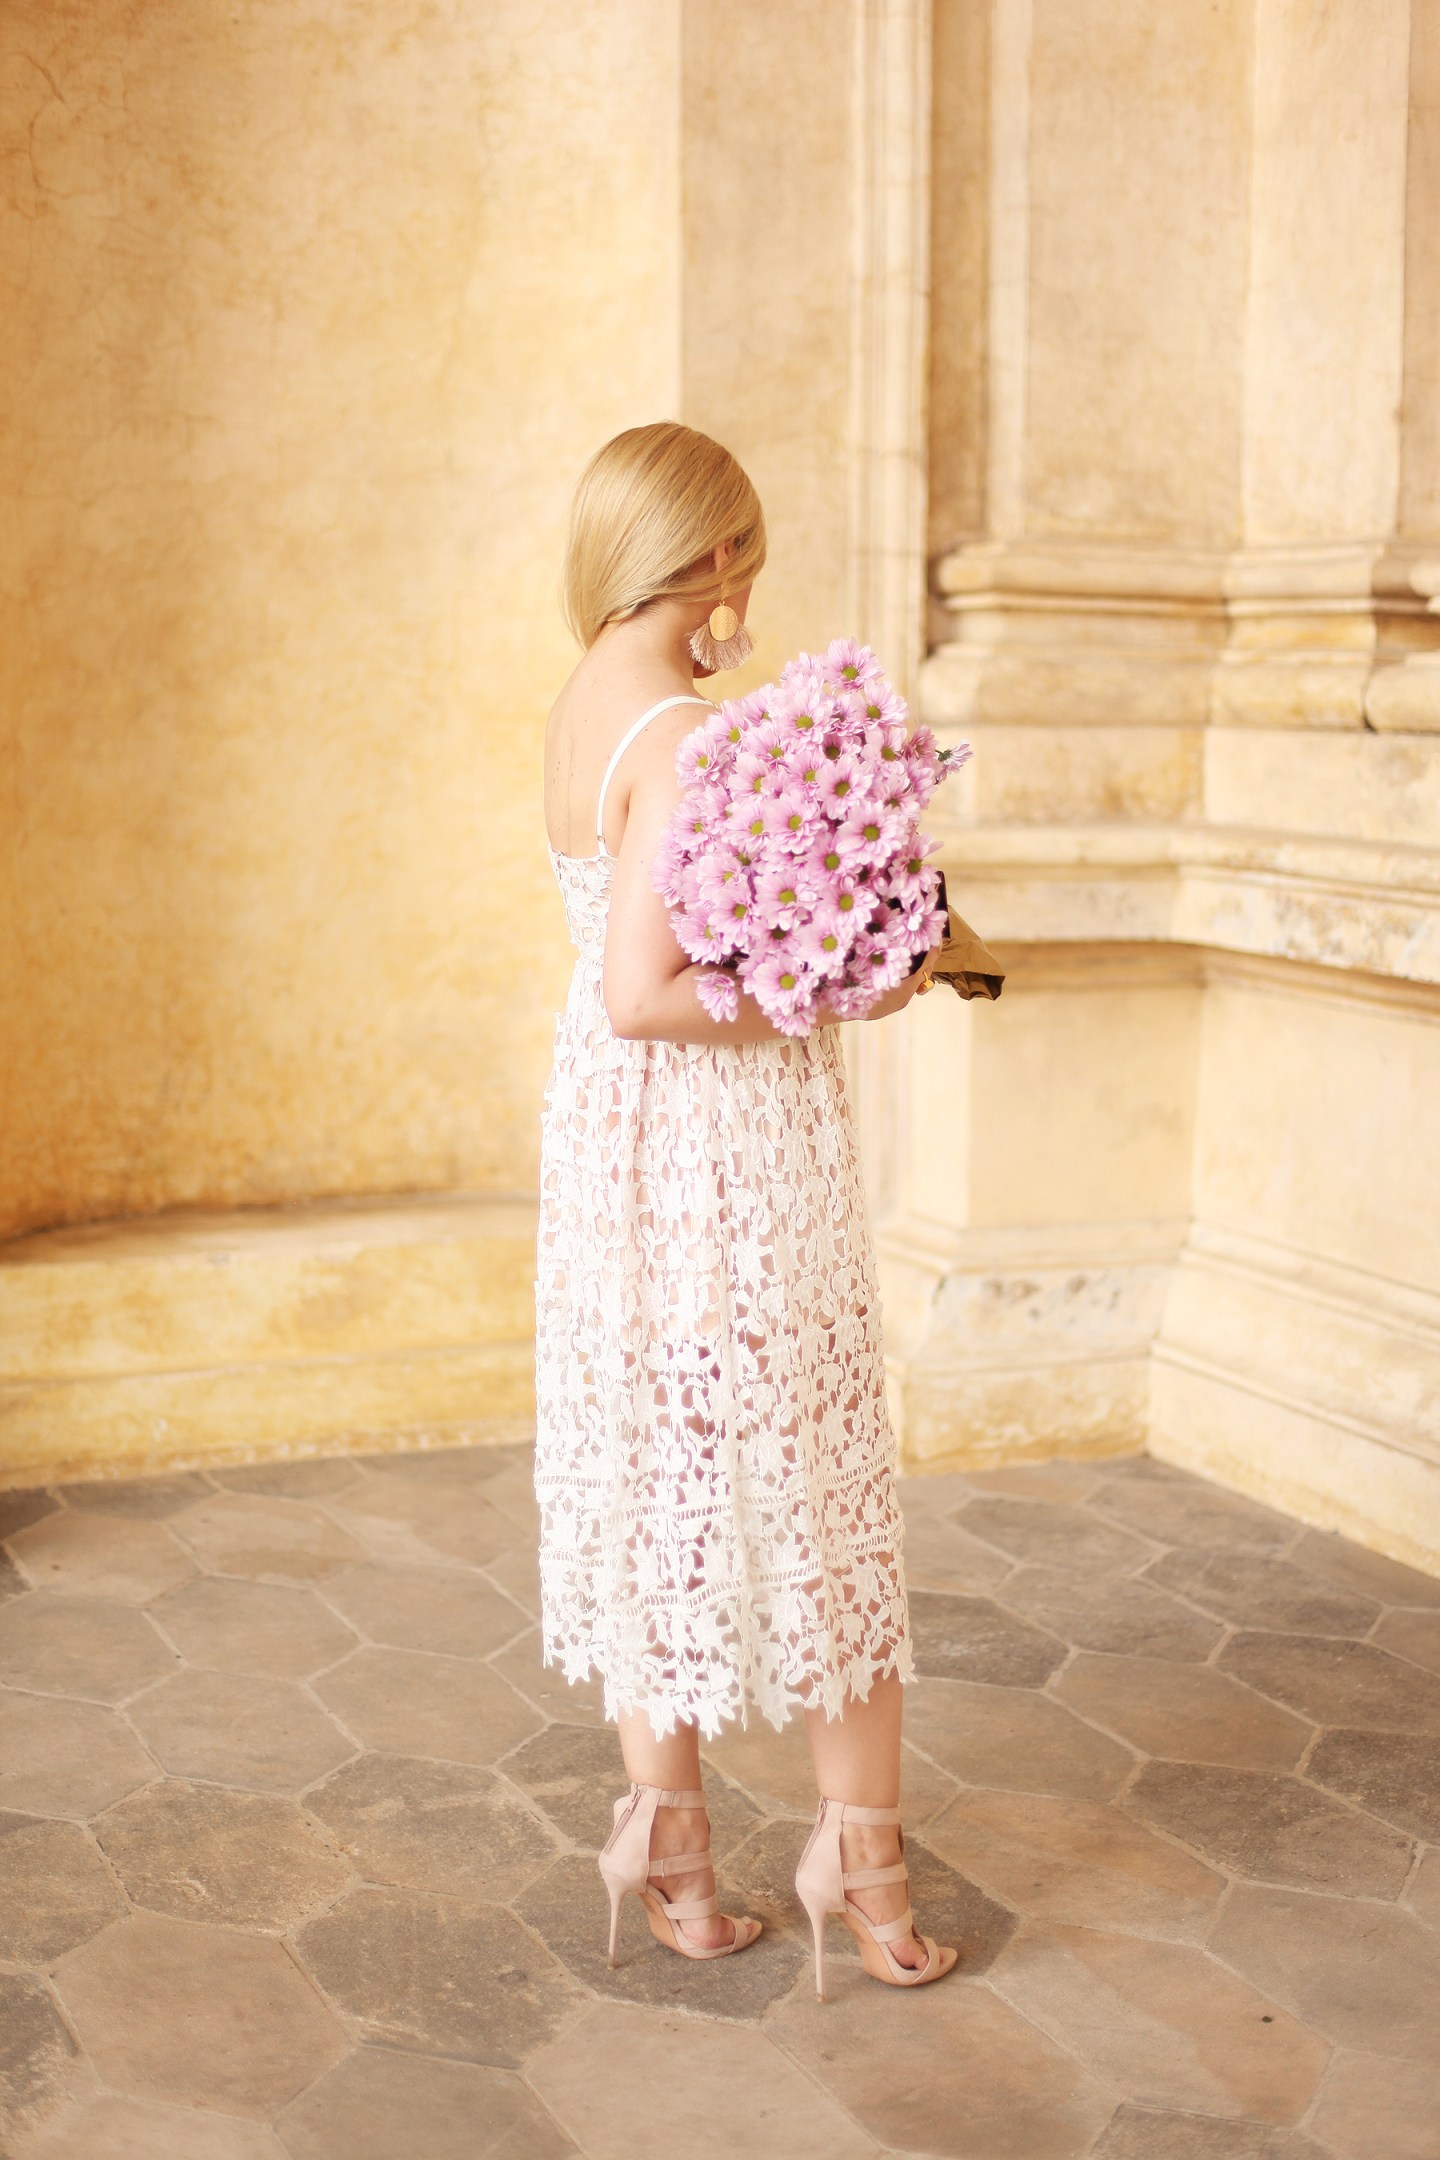 Summer dresses and lavender flowers